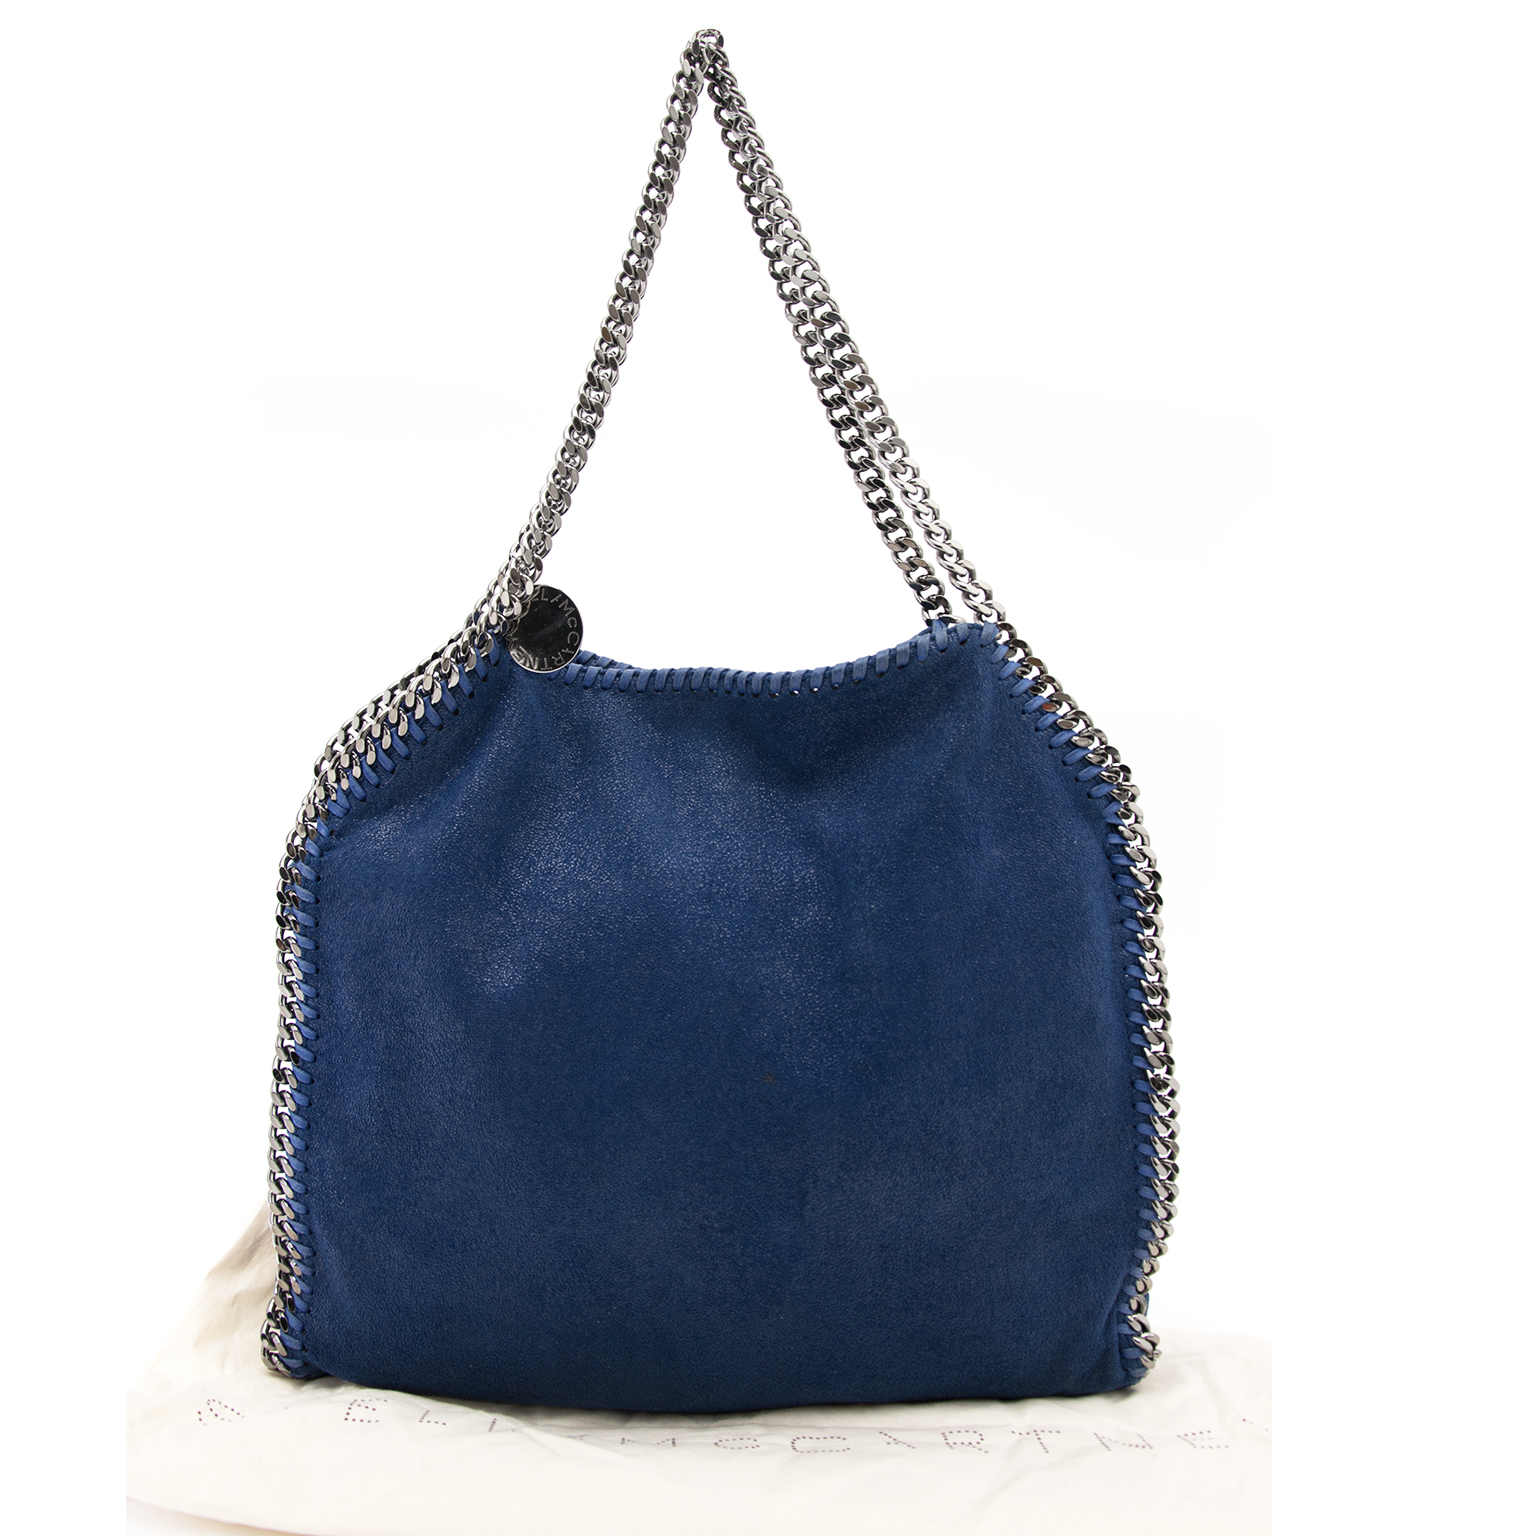 We buy and sell your it bags for the best prices such as this brand new Stella McCartney Falabella Small Tote